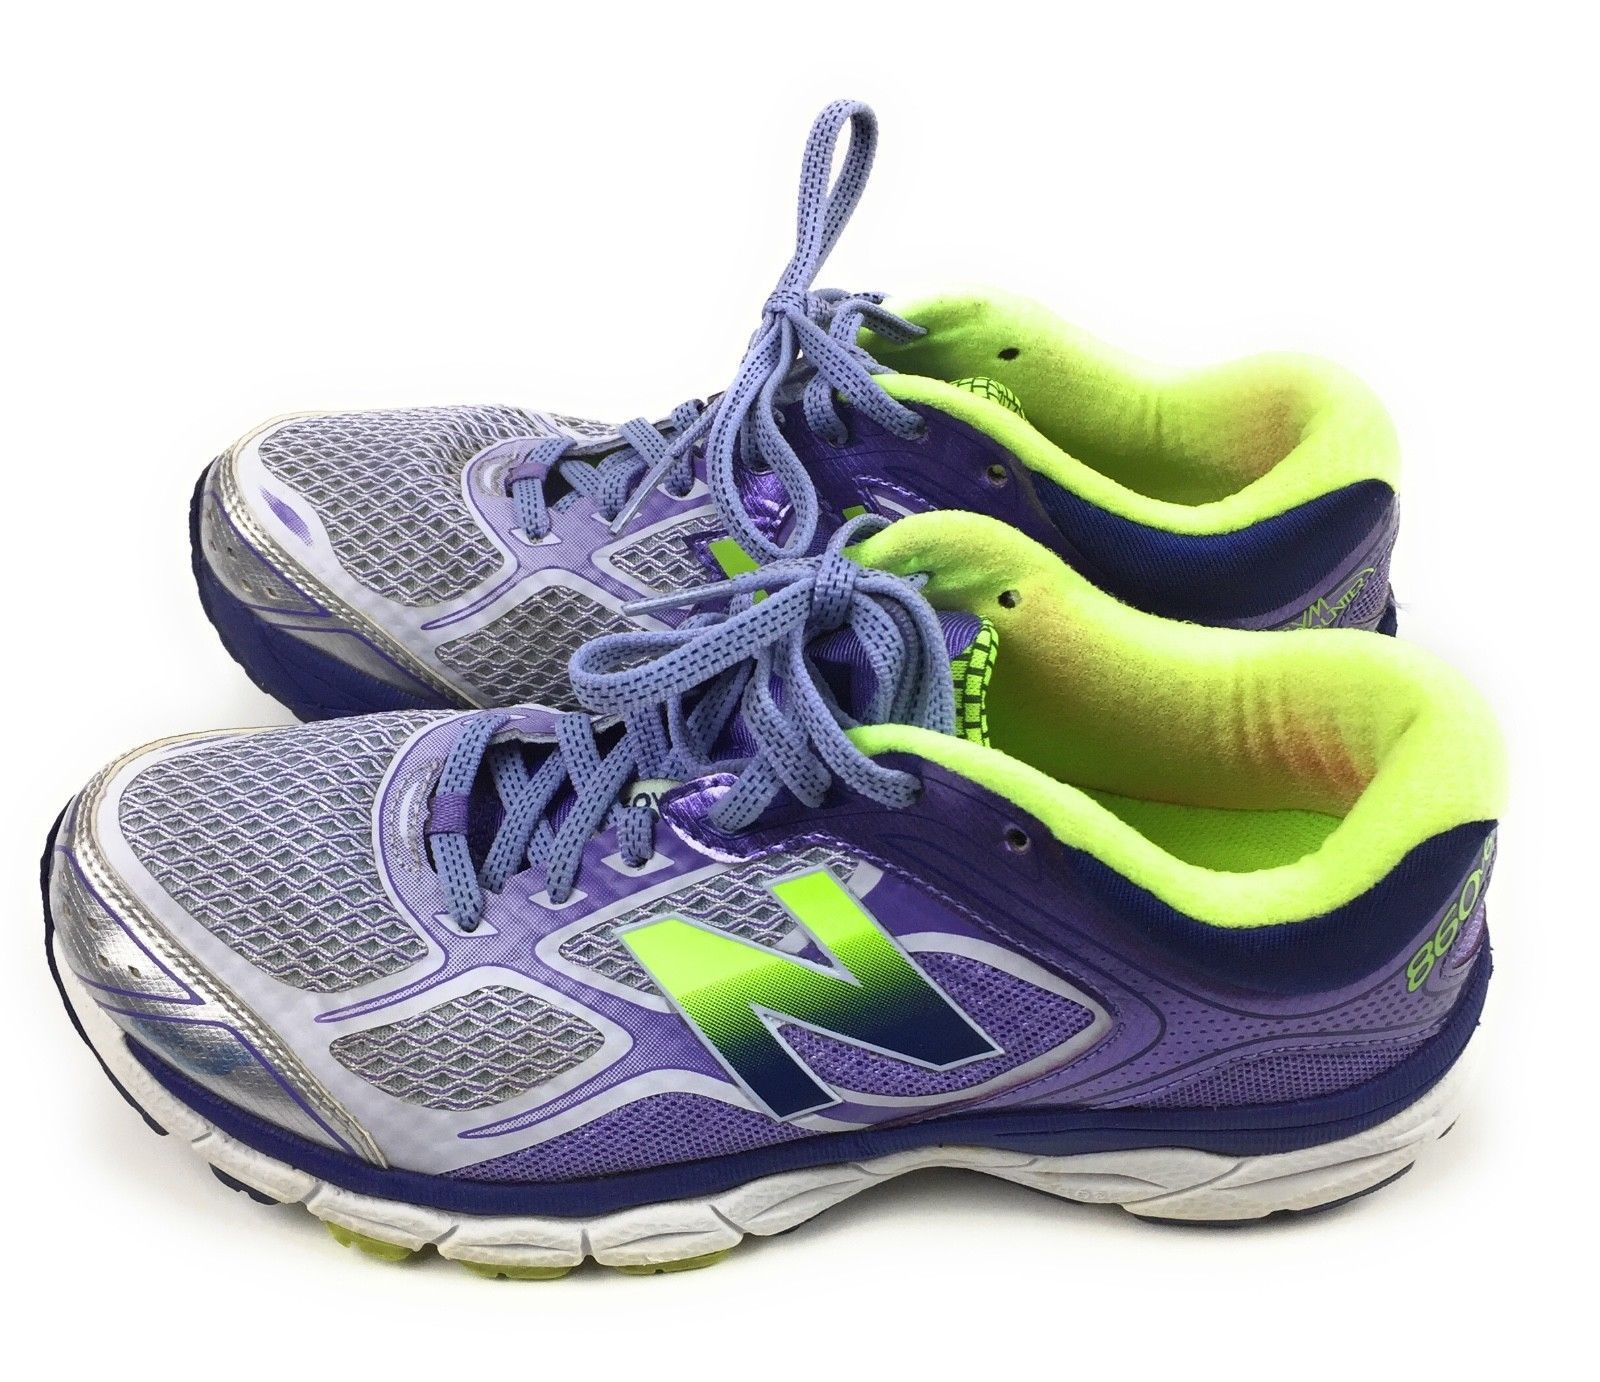 New Balance 860v6 Athletic Running Shoes W860GP8 Purple Green Women's Size 8 US image 4